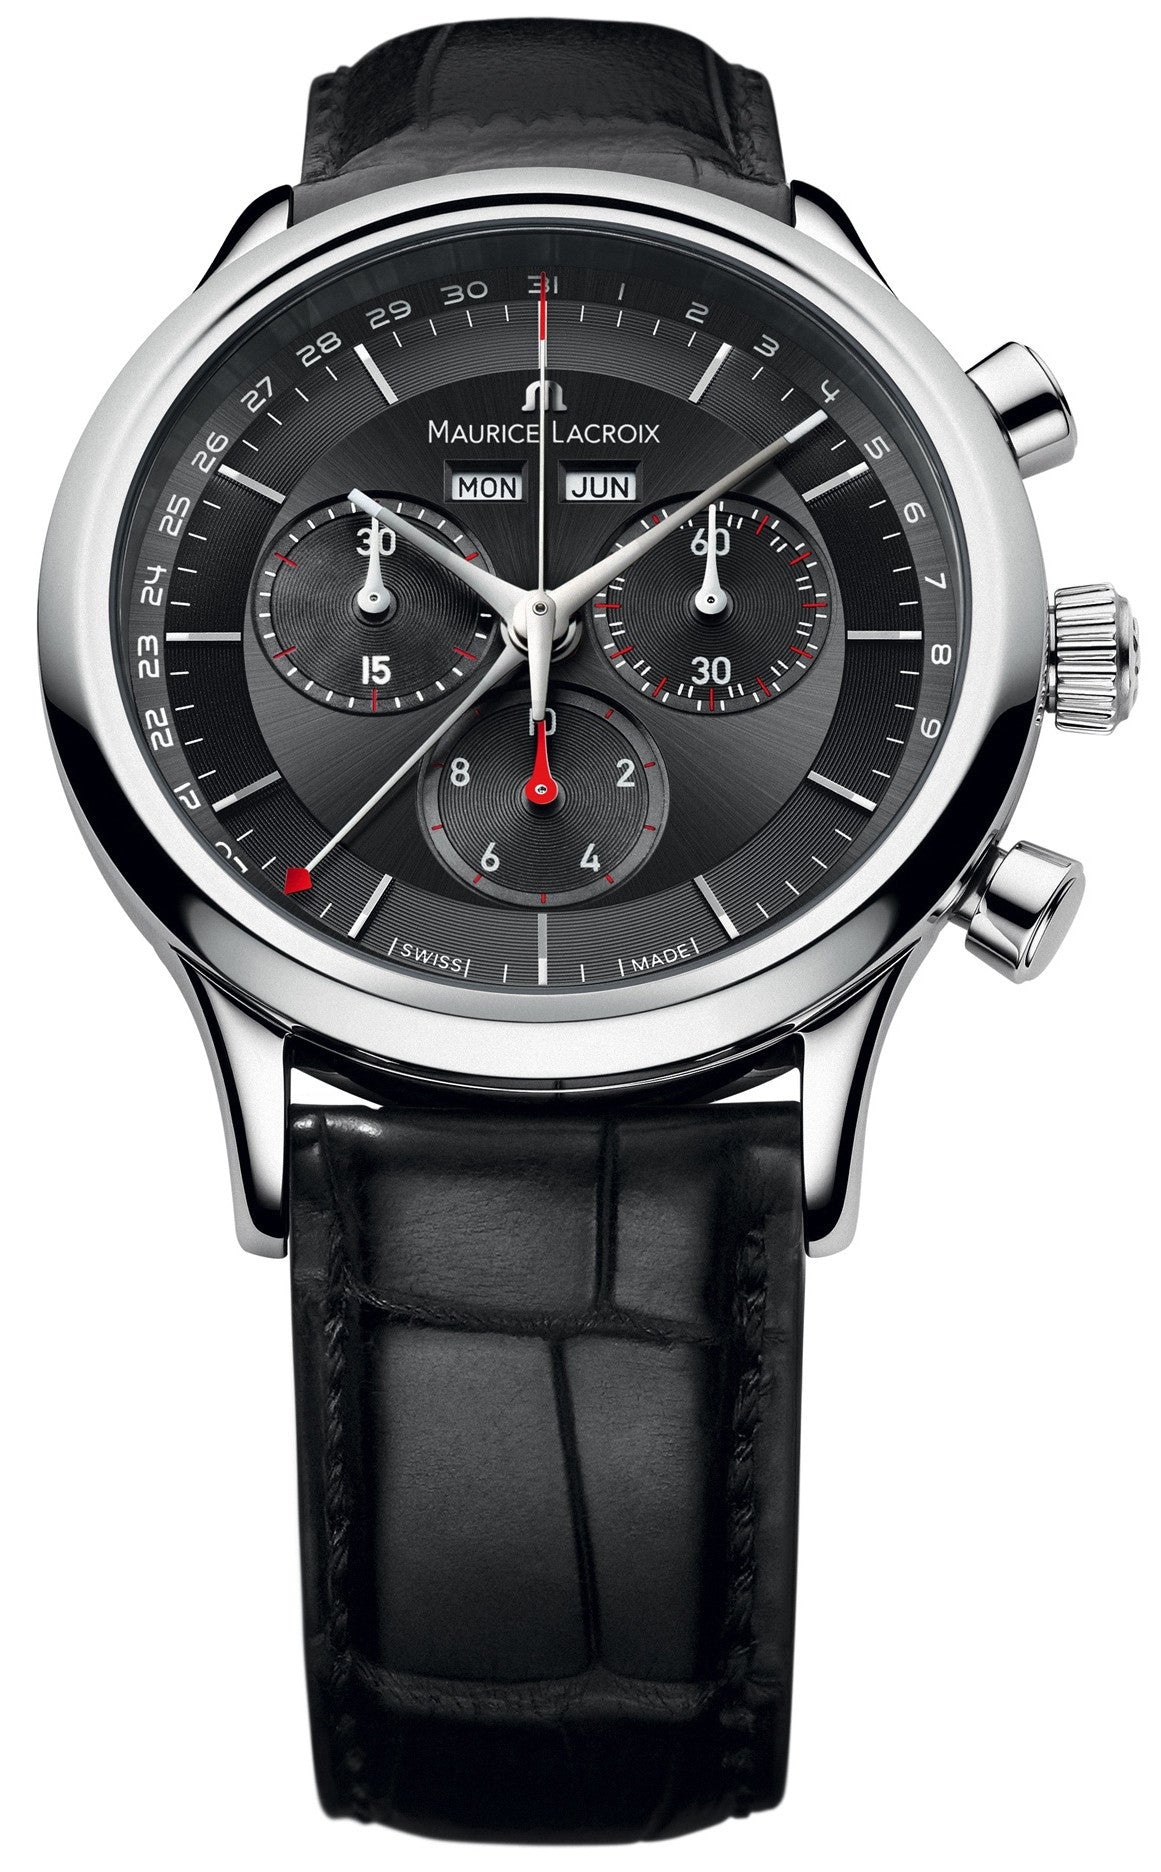 Maurice lacroix watch les classiques day date month chrono lc1228 ss001 330 watch for Maurice lacroix watches